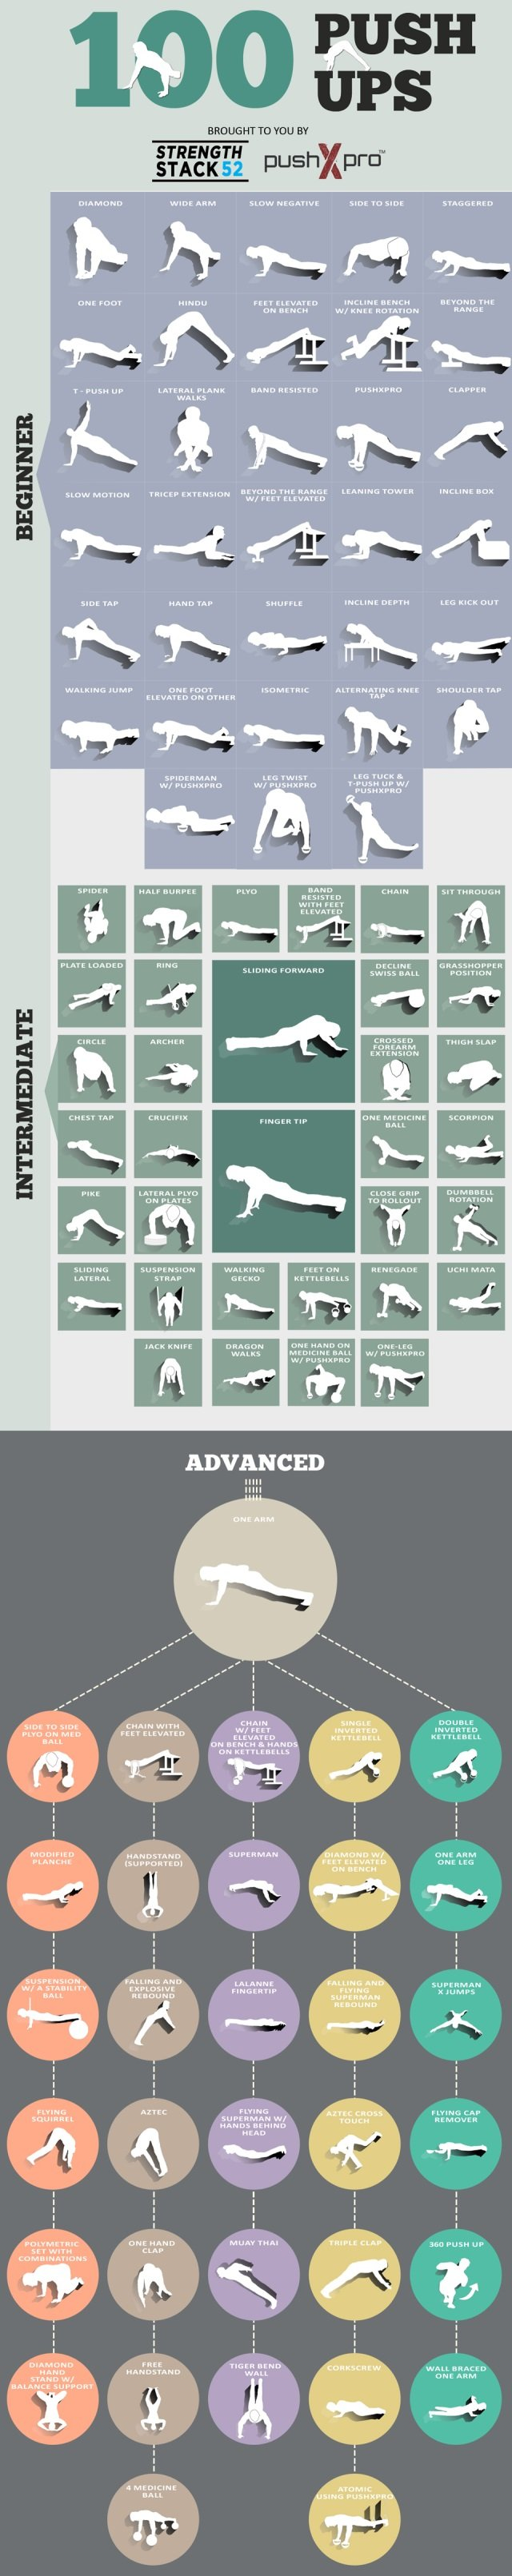 push-up variations